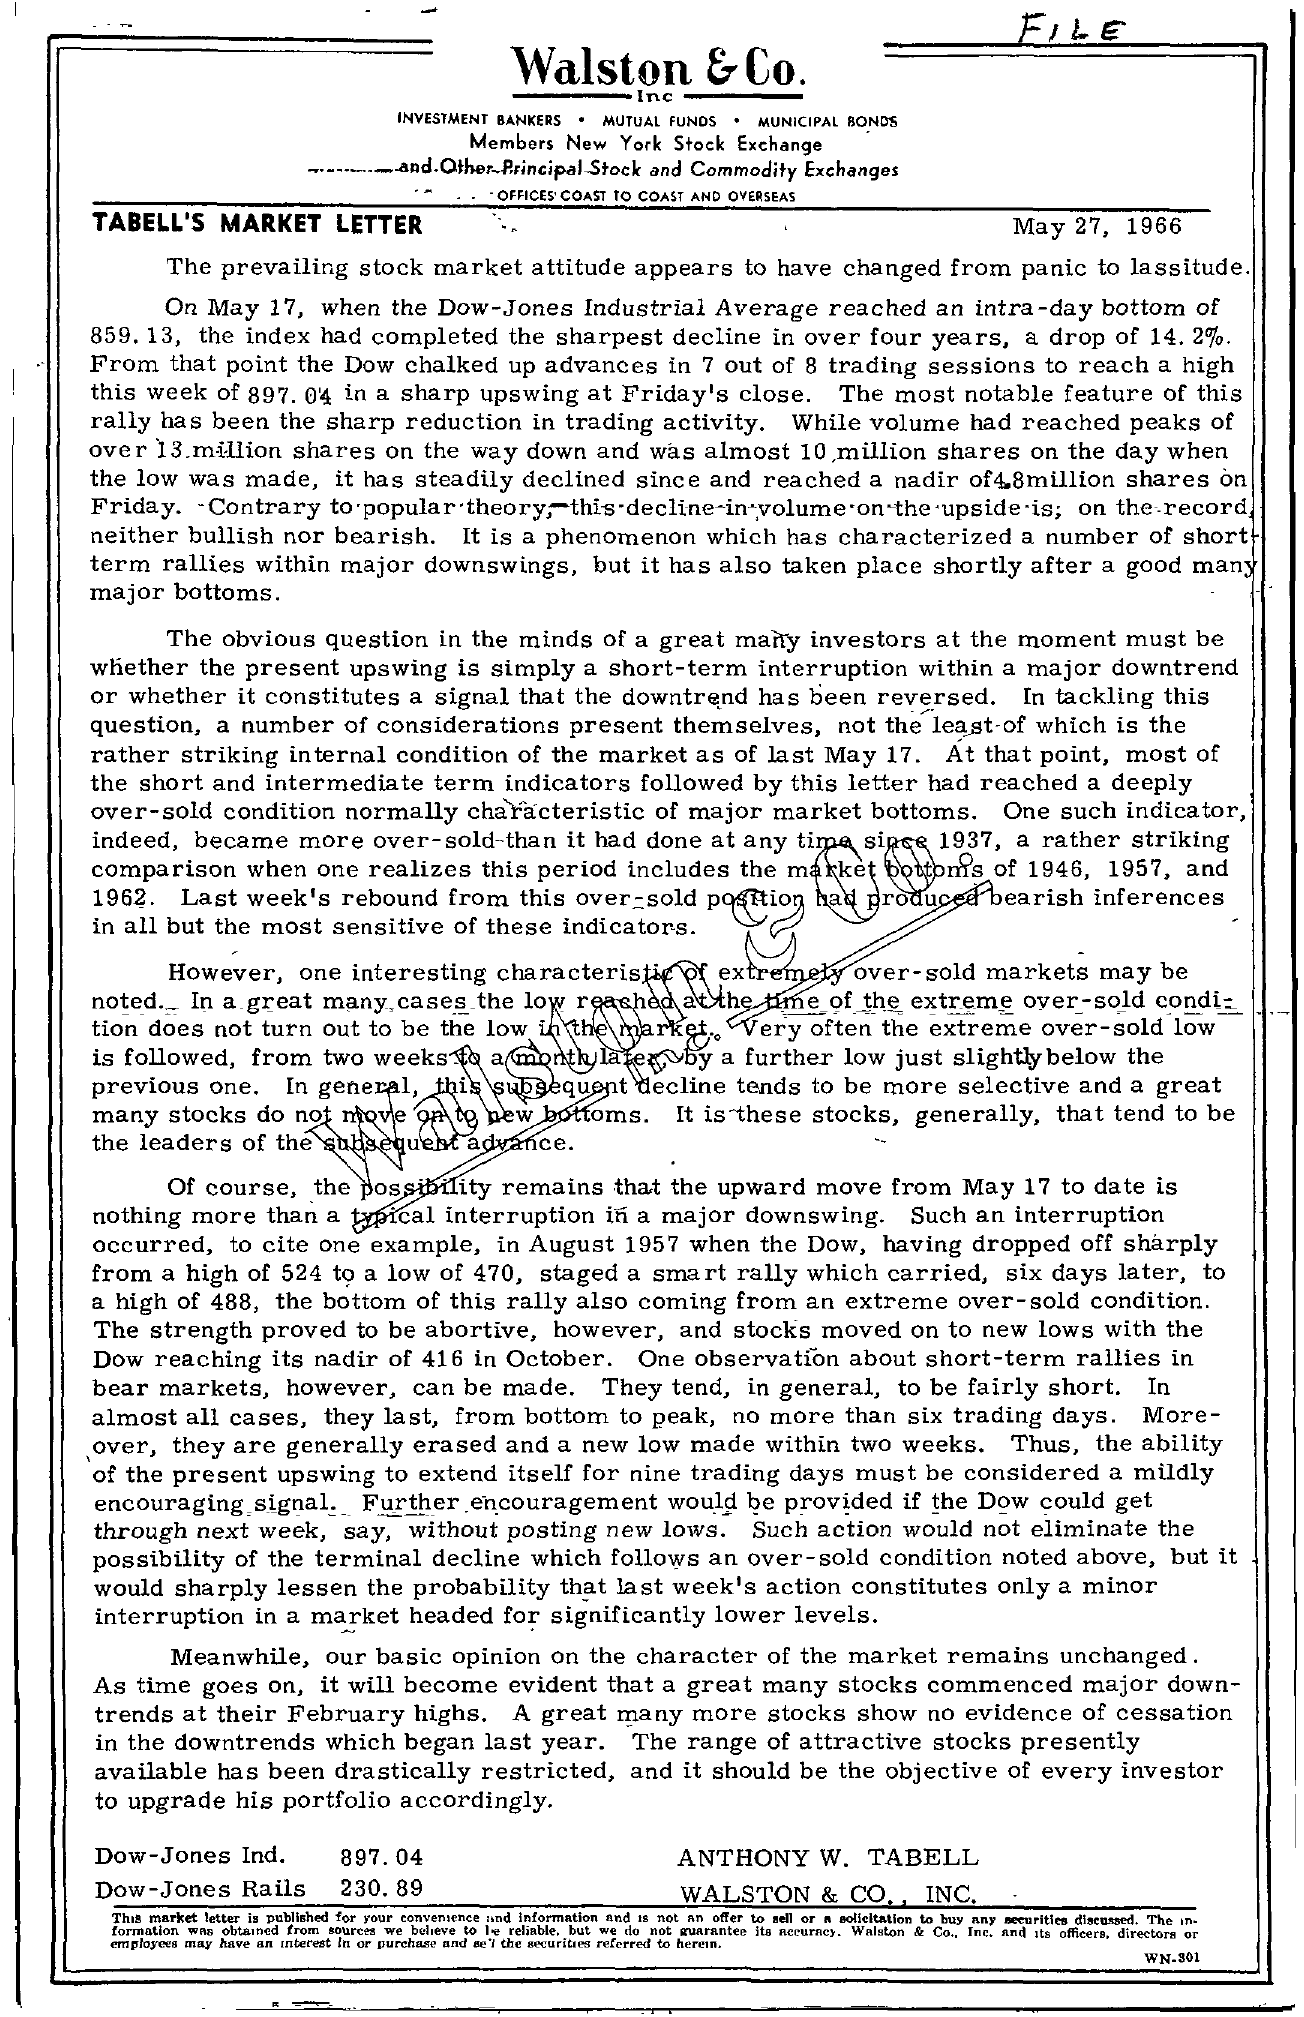 Tabell's Market Letter - May 27, 1966